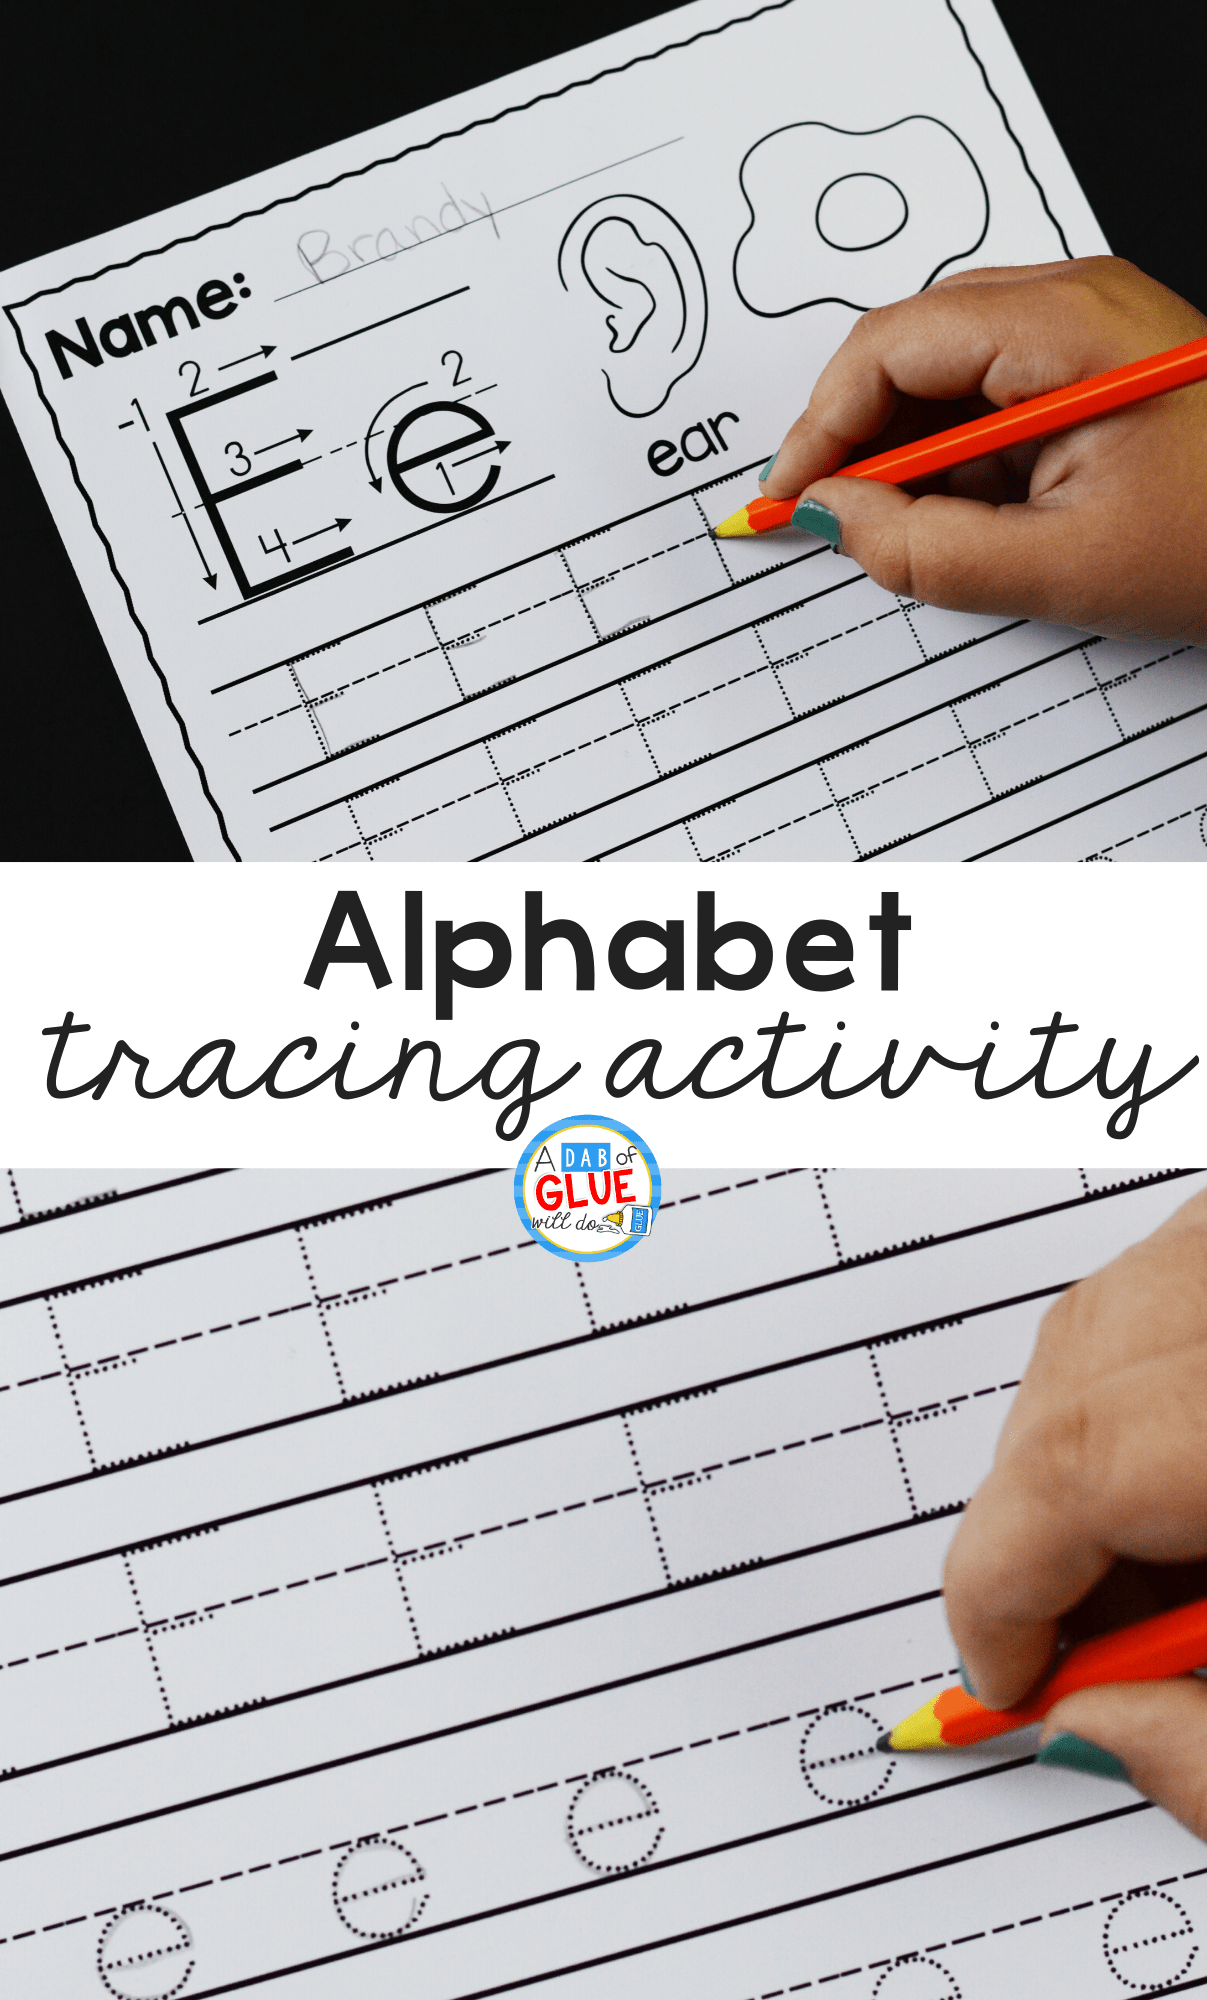 I love having weekly themes, especially when we can build on it while learning the alphabet throughout the year. So I've created this Alphabet Tracing Activity.